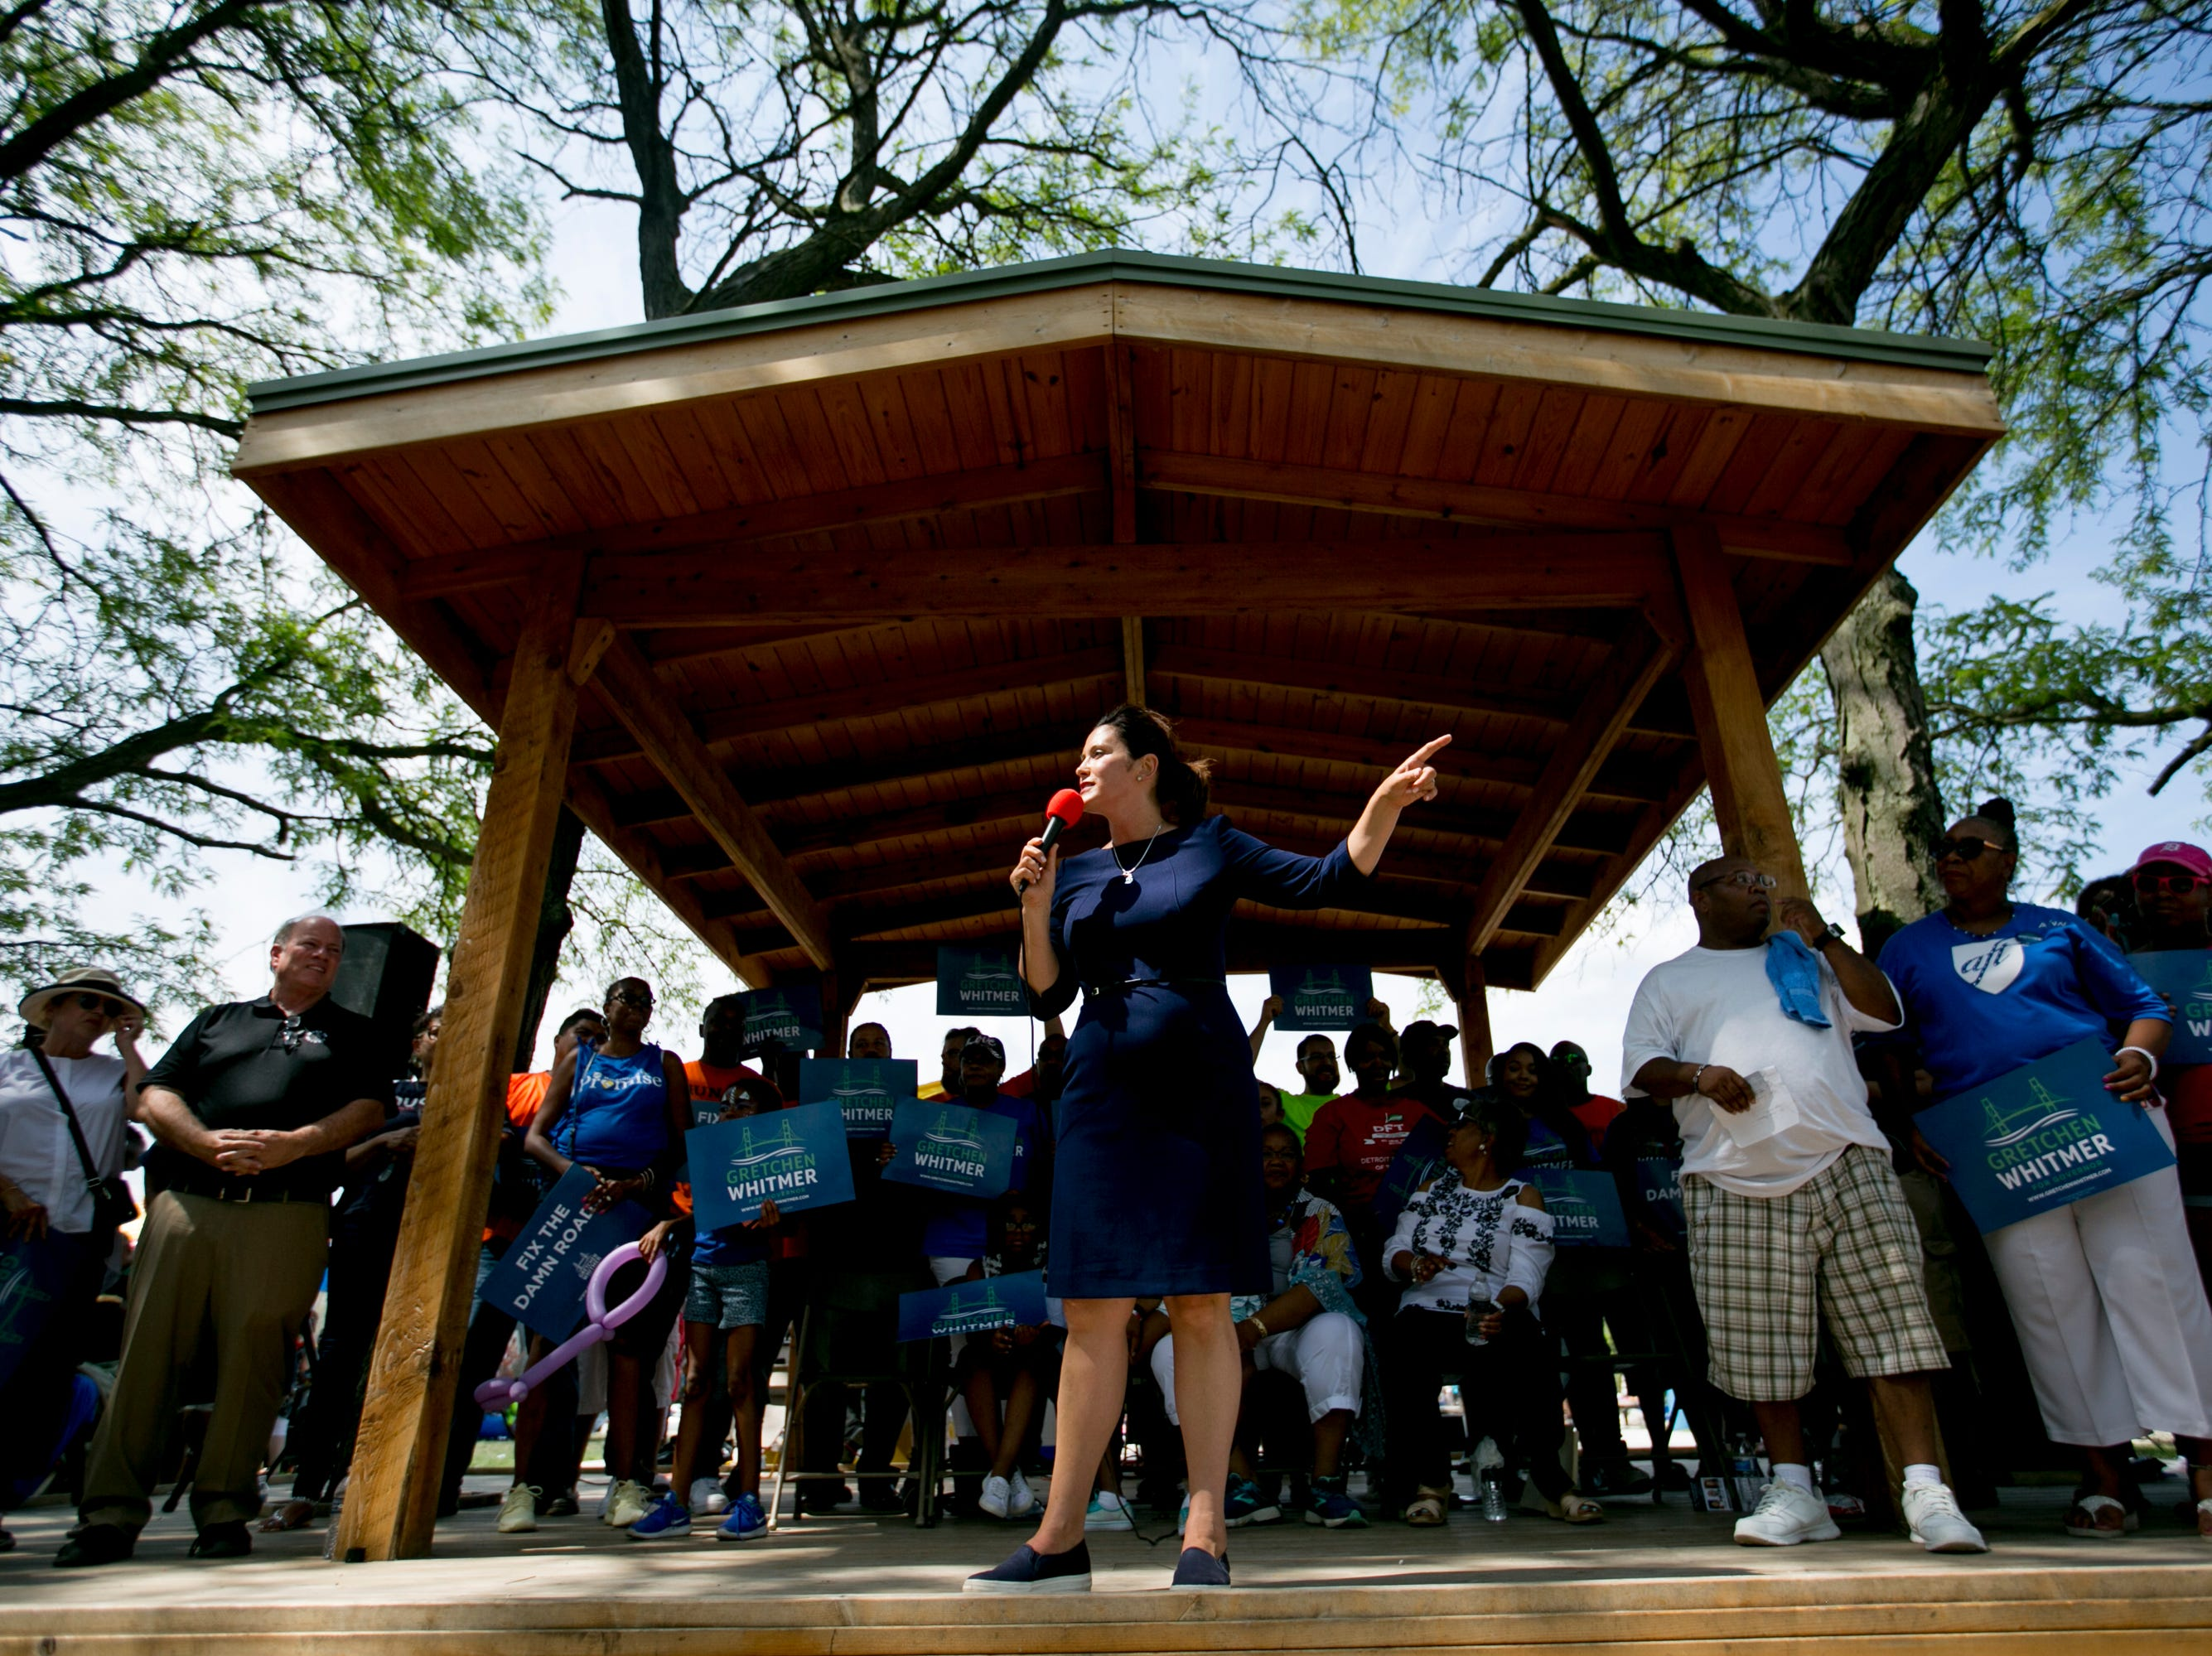 Gubernatorial candidate Gretchen Whitmer speaks a campaign event at Gordon Park in Detroit on August 6, 2018.